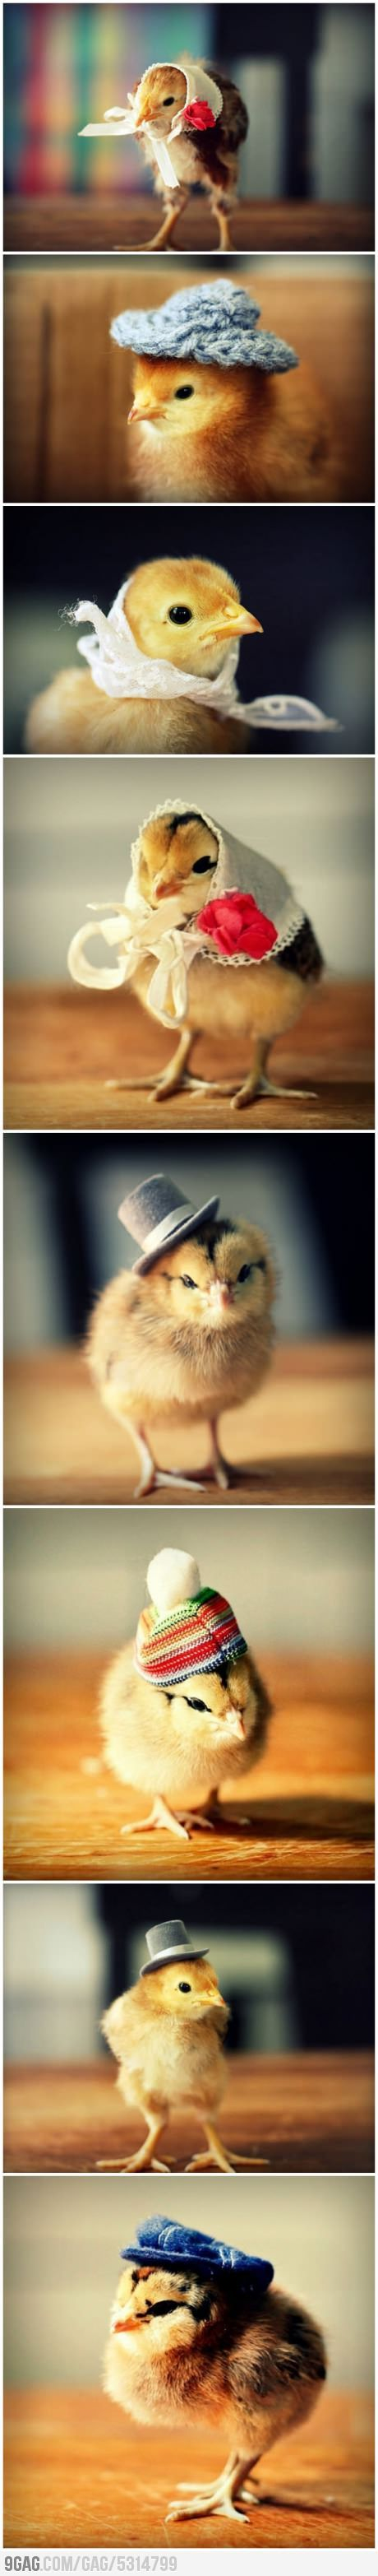 <3: Baby Chick, Pom Hats, Funny, Adorable, Things, Naked Chick, Hats Prints, Animal, Tops Hats